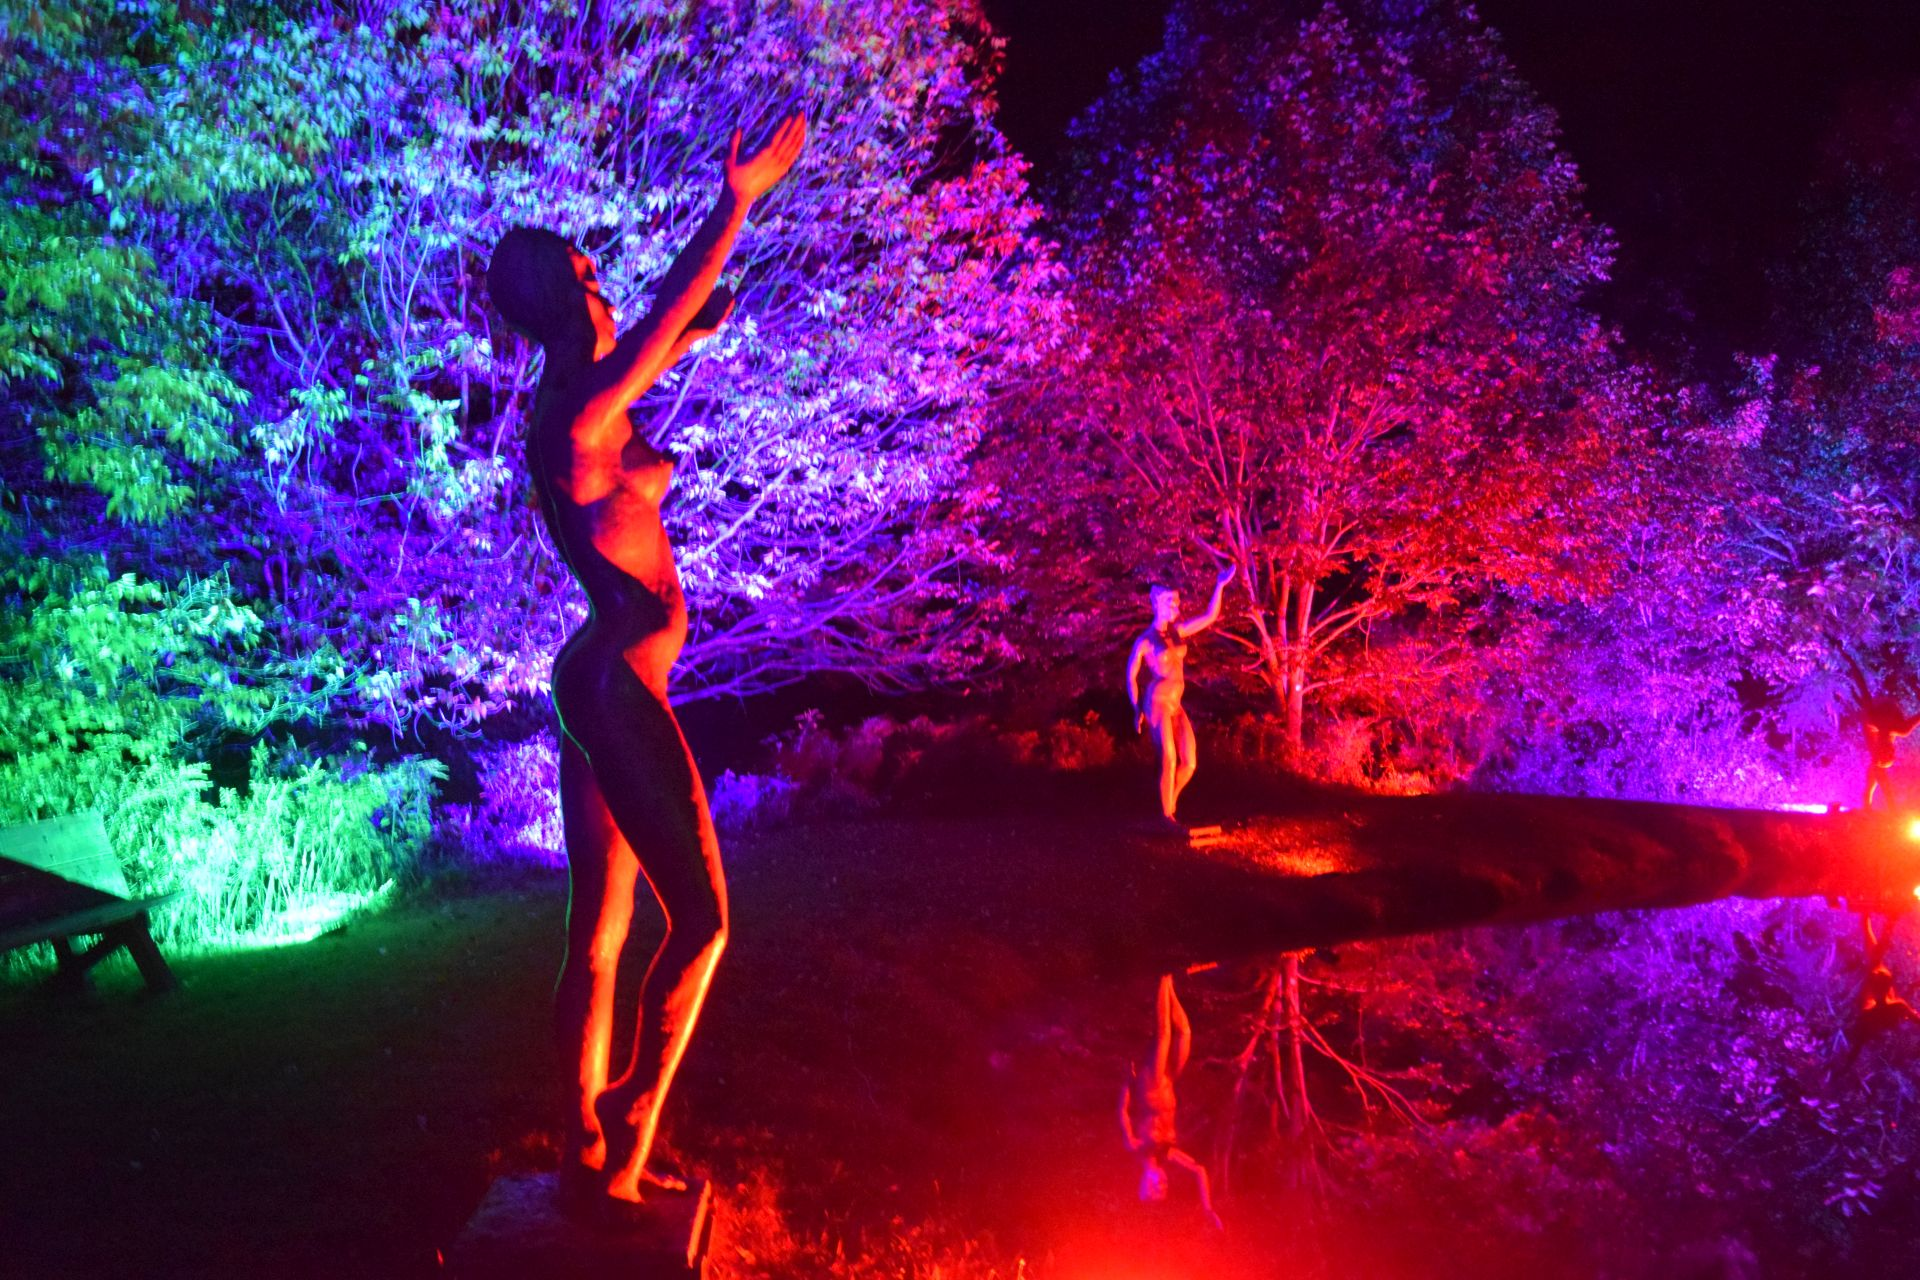 SitlerHQ set to produce 8th annual NIGHT LIGHTS at Griffis Sculpture Park